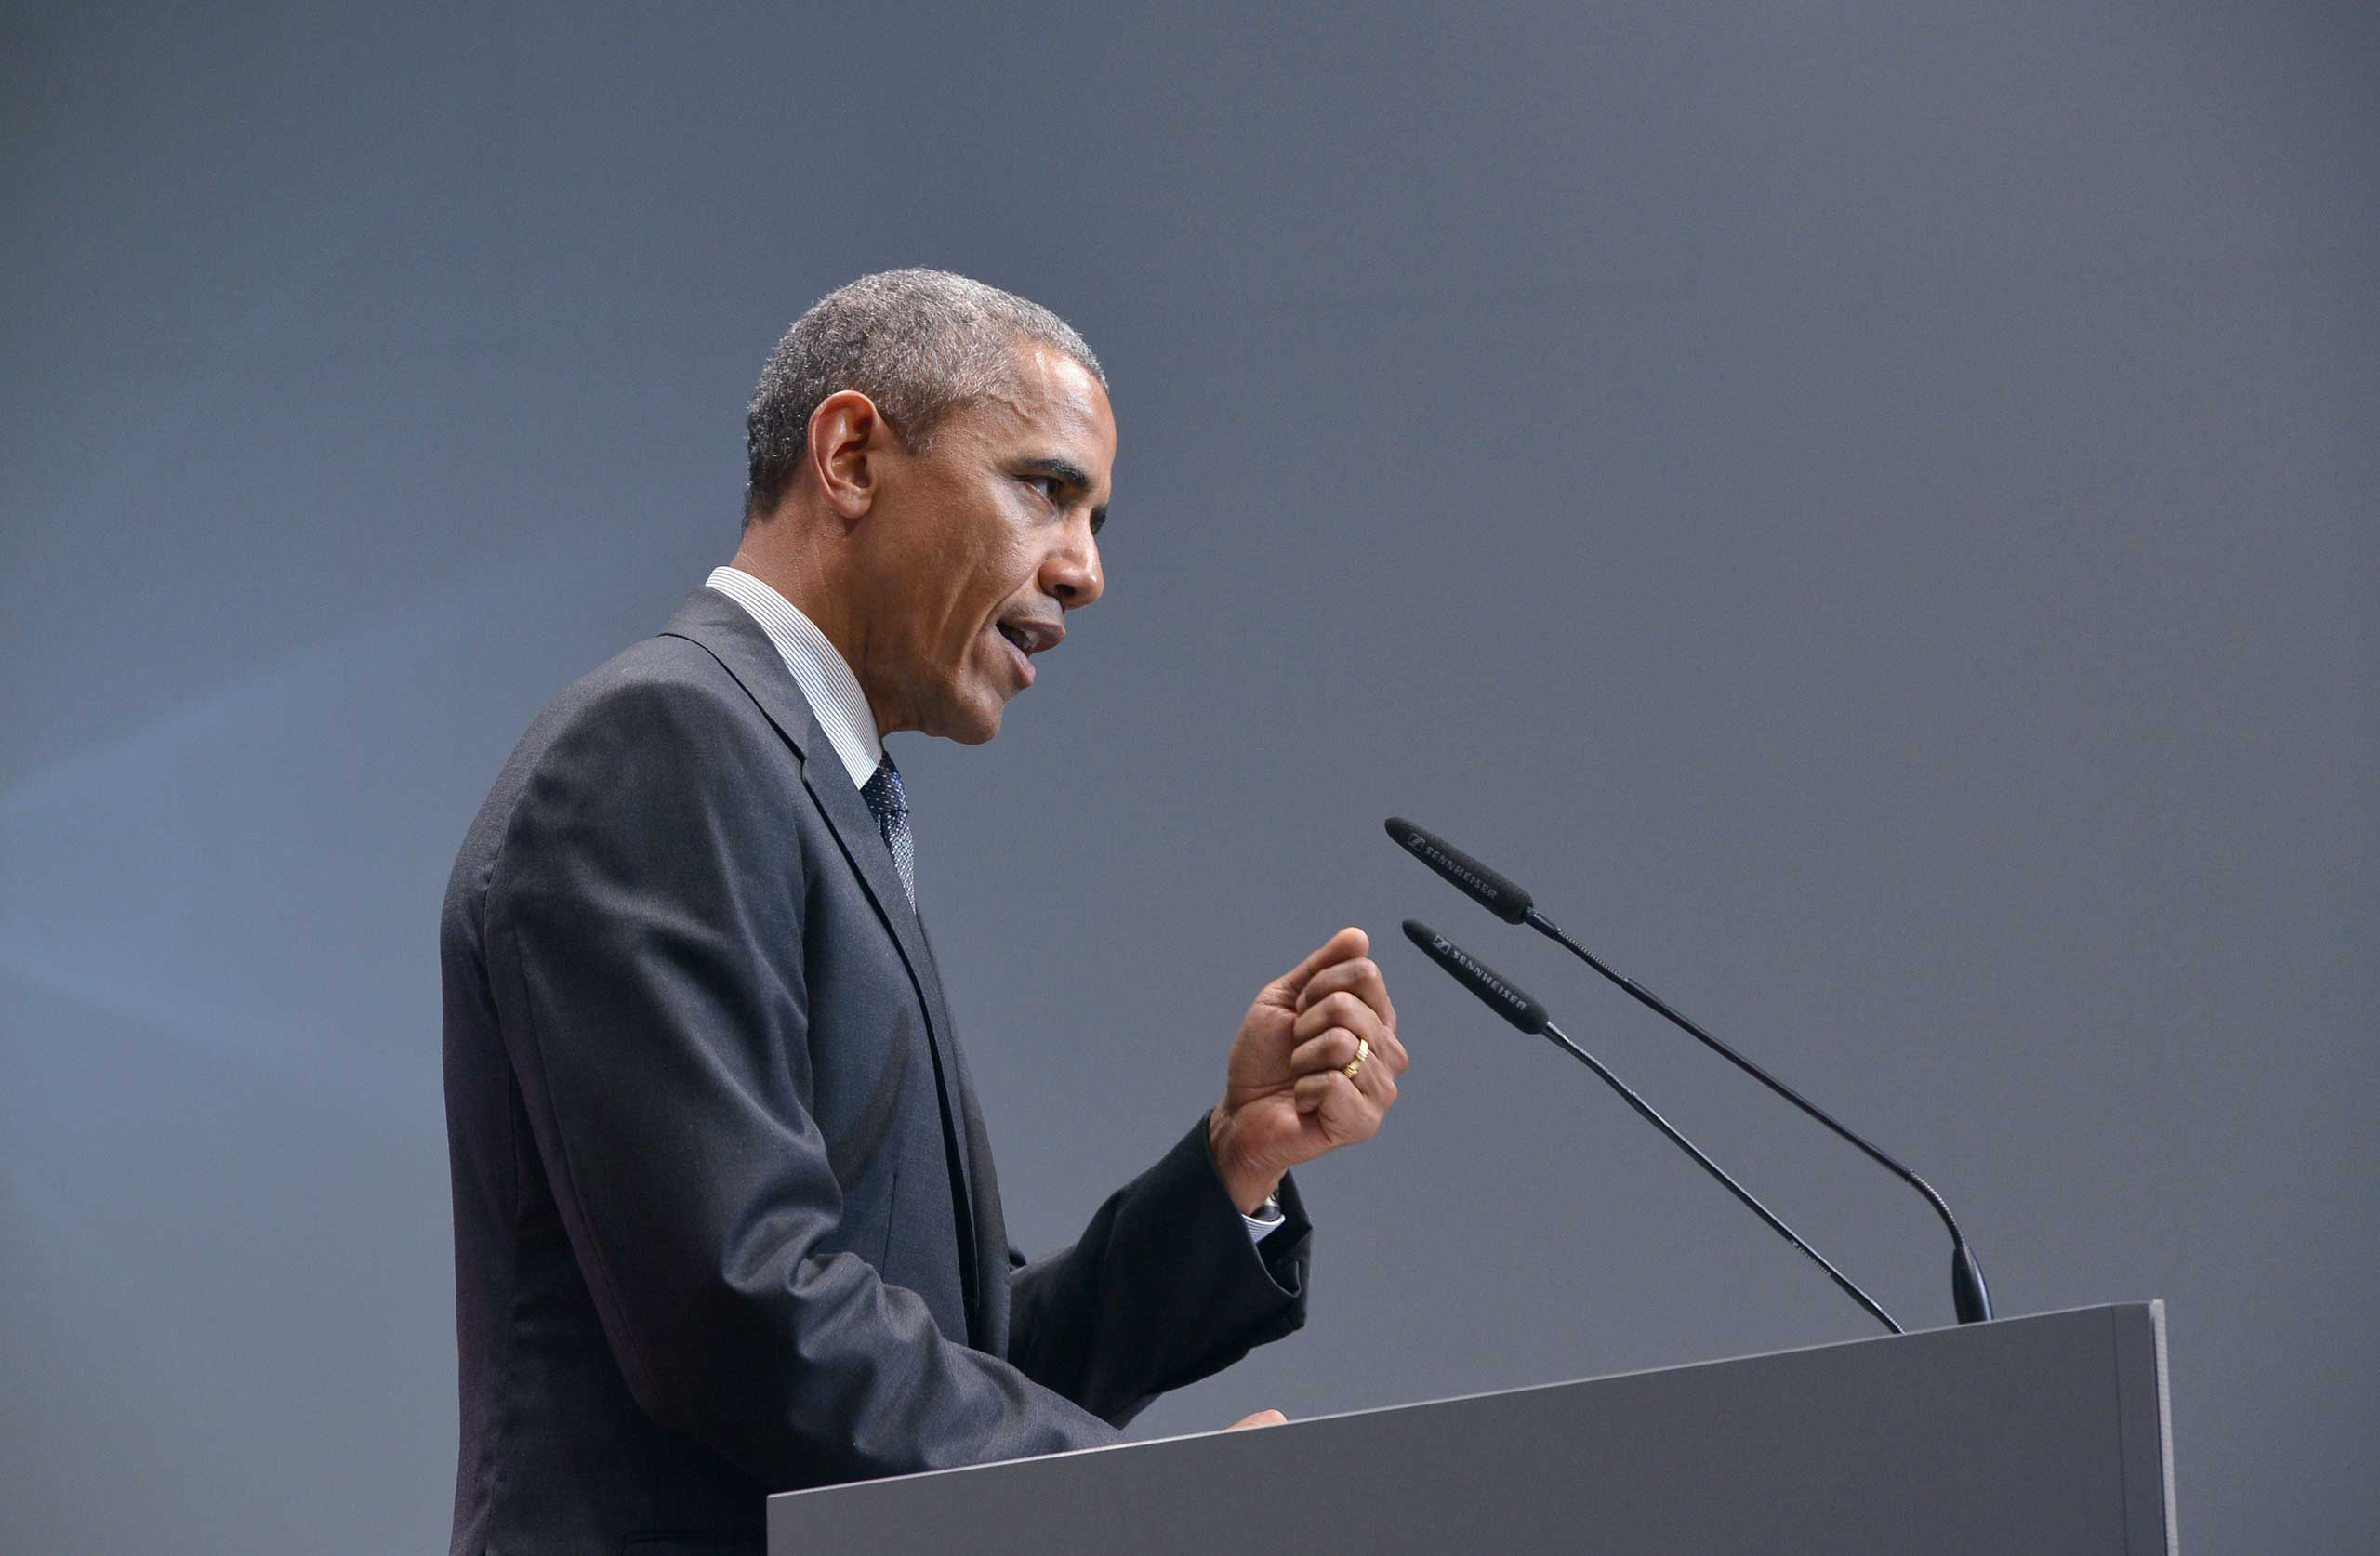 US President Barack Obama addresses a press conference at Elmau Castle near Garmisch-Partenkirchen, southern Germany,  at the end of a G7 summit, on June 8, 2015.